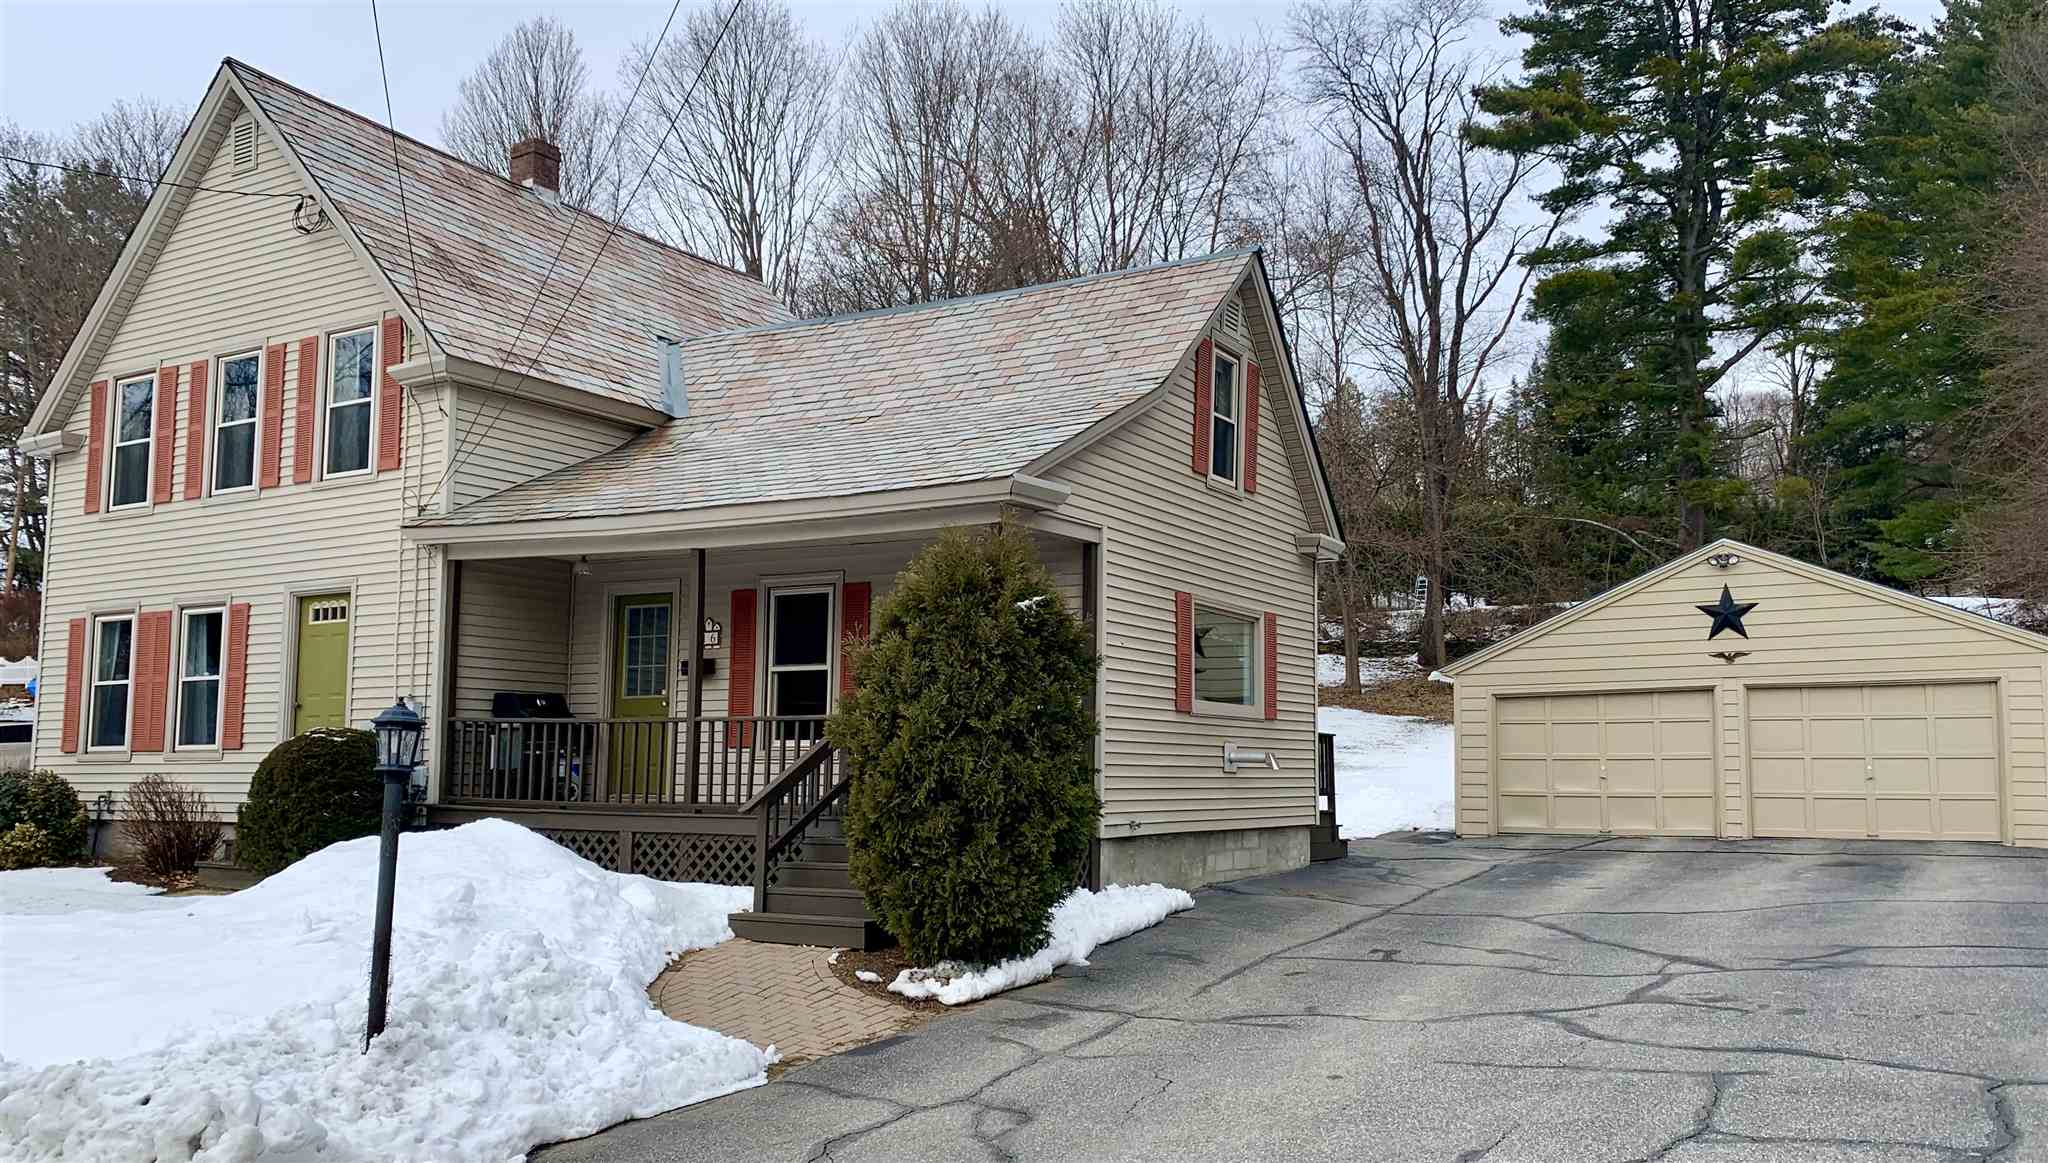 image of Springfield VT Home | sq.ft. 2892